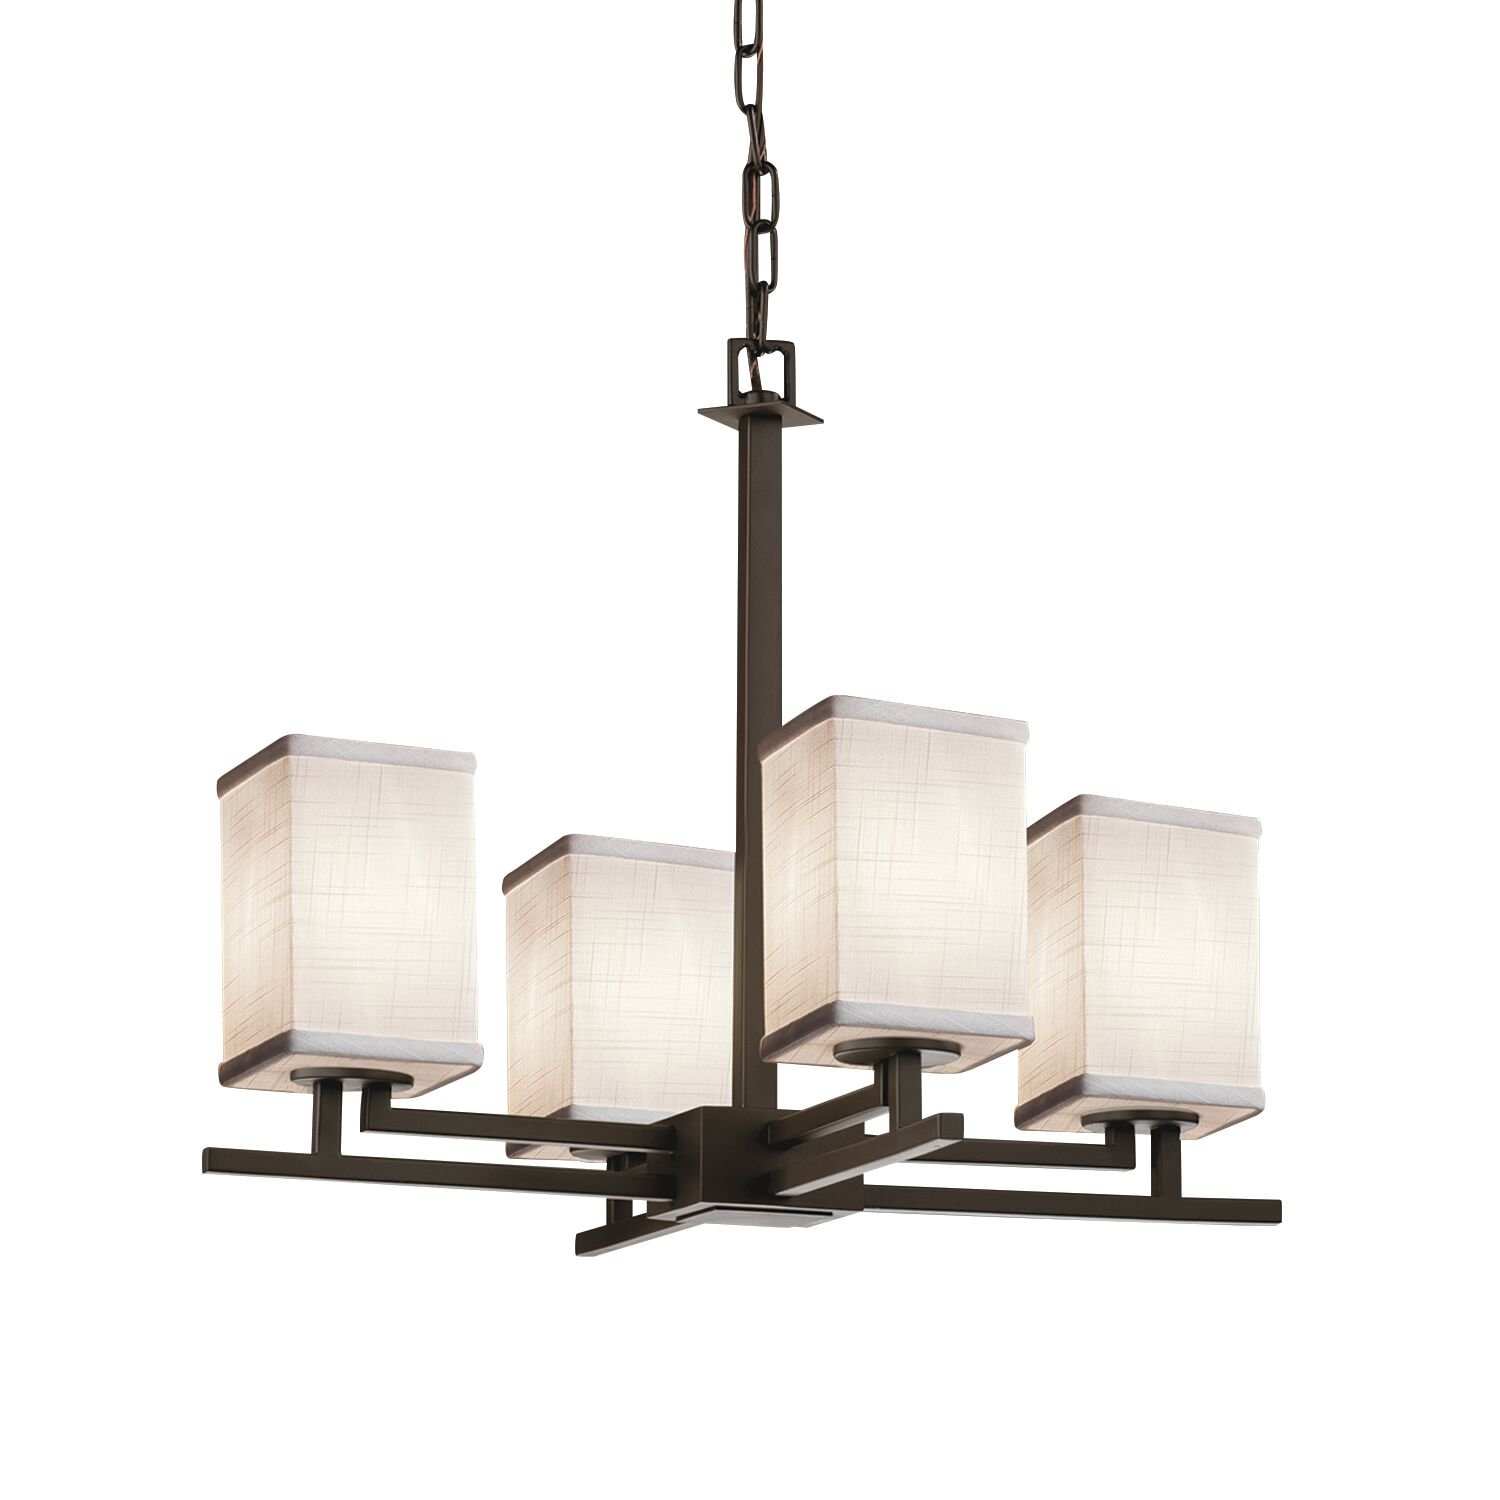 Red Hook 4 Light LED Square w/ Flat Rim Chain Chandelier Finish: Brushed Nickel, Shade Color: White